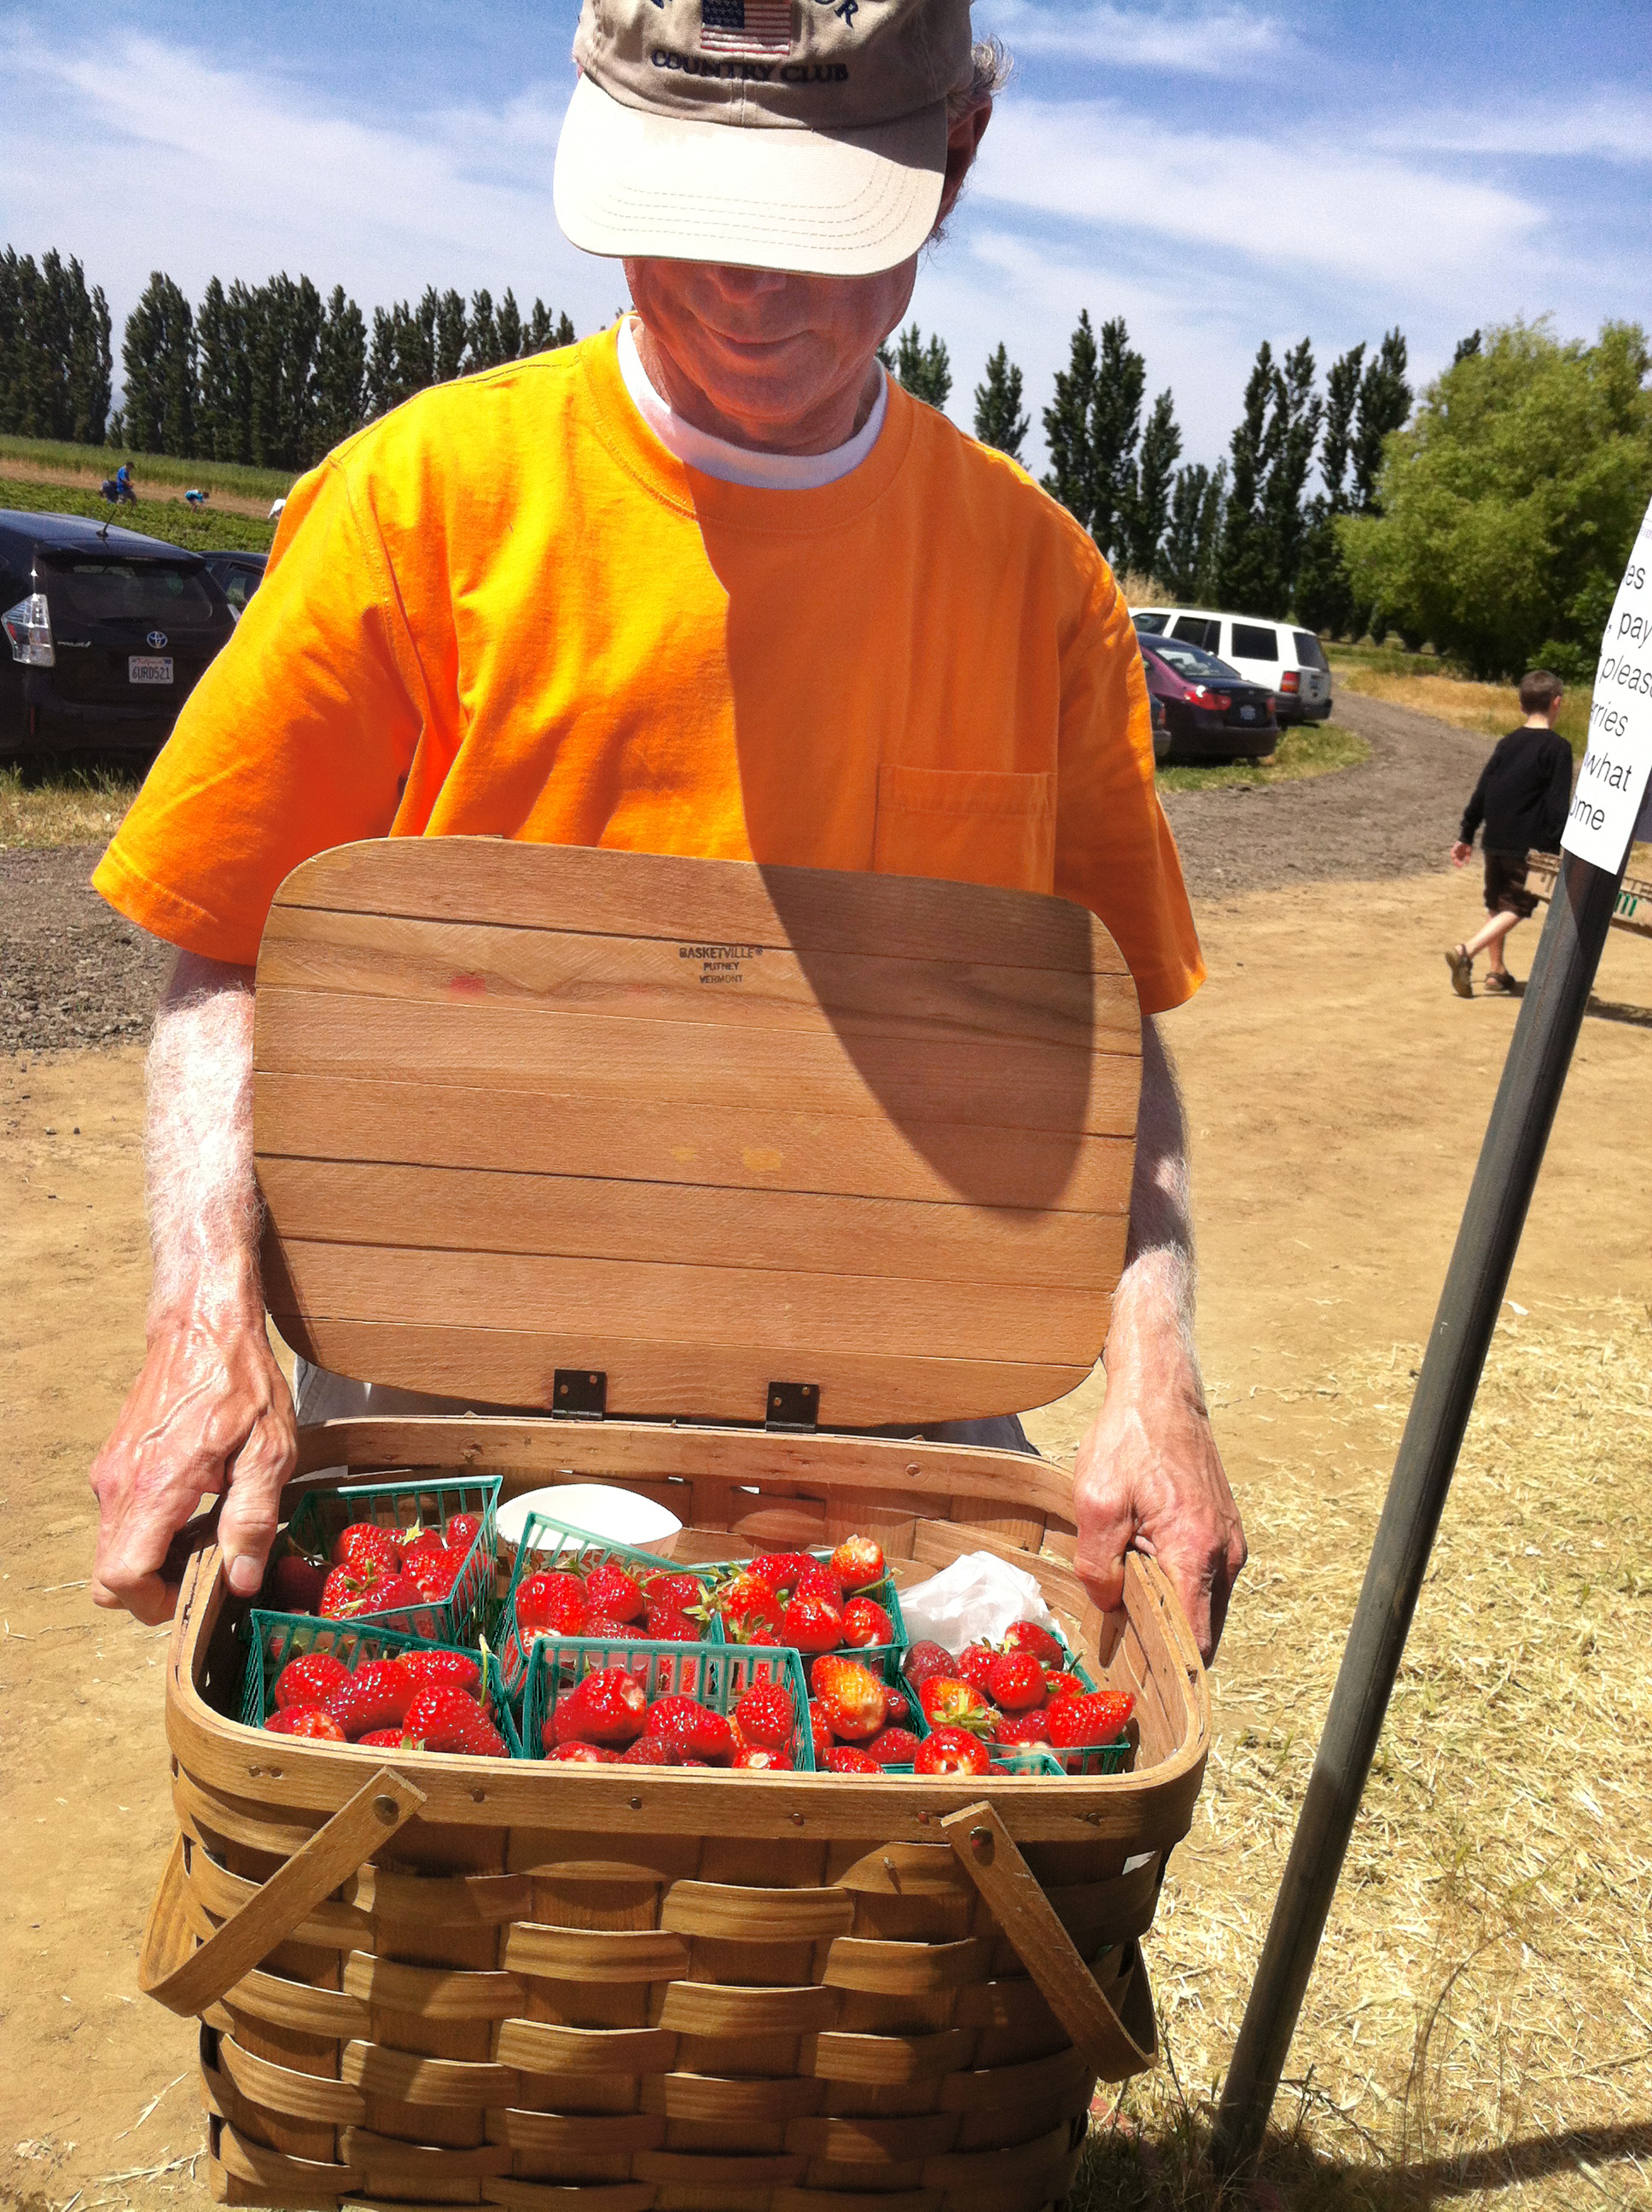 John with his basket full of freshly picked strawberries at an Eatwell Farm Strawberry Day event.